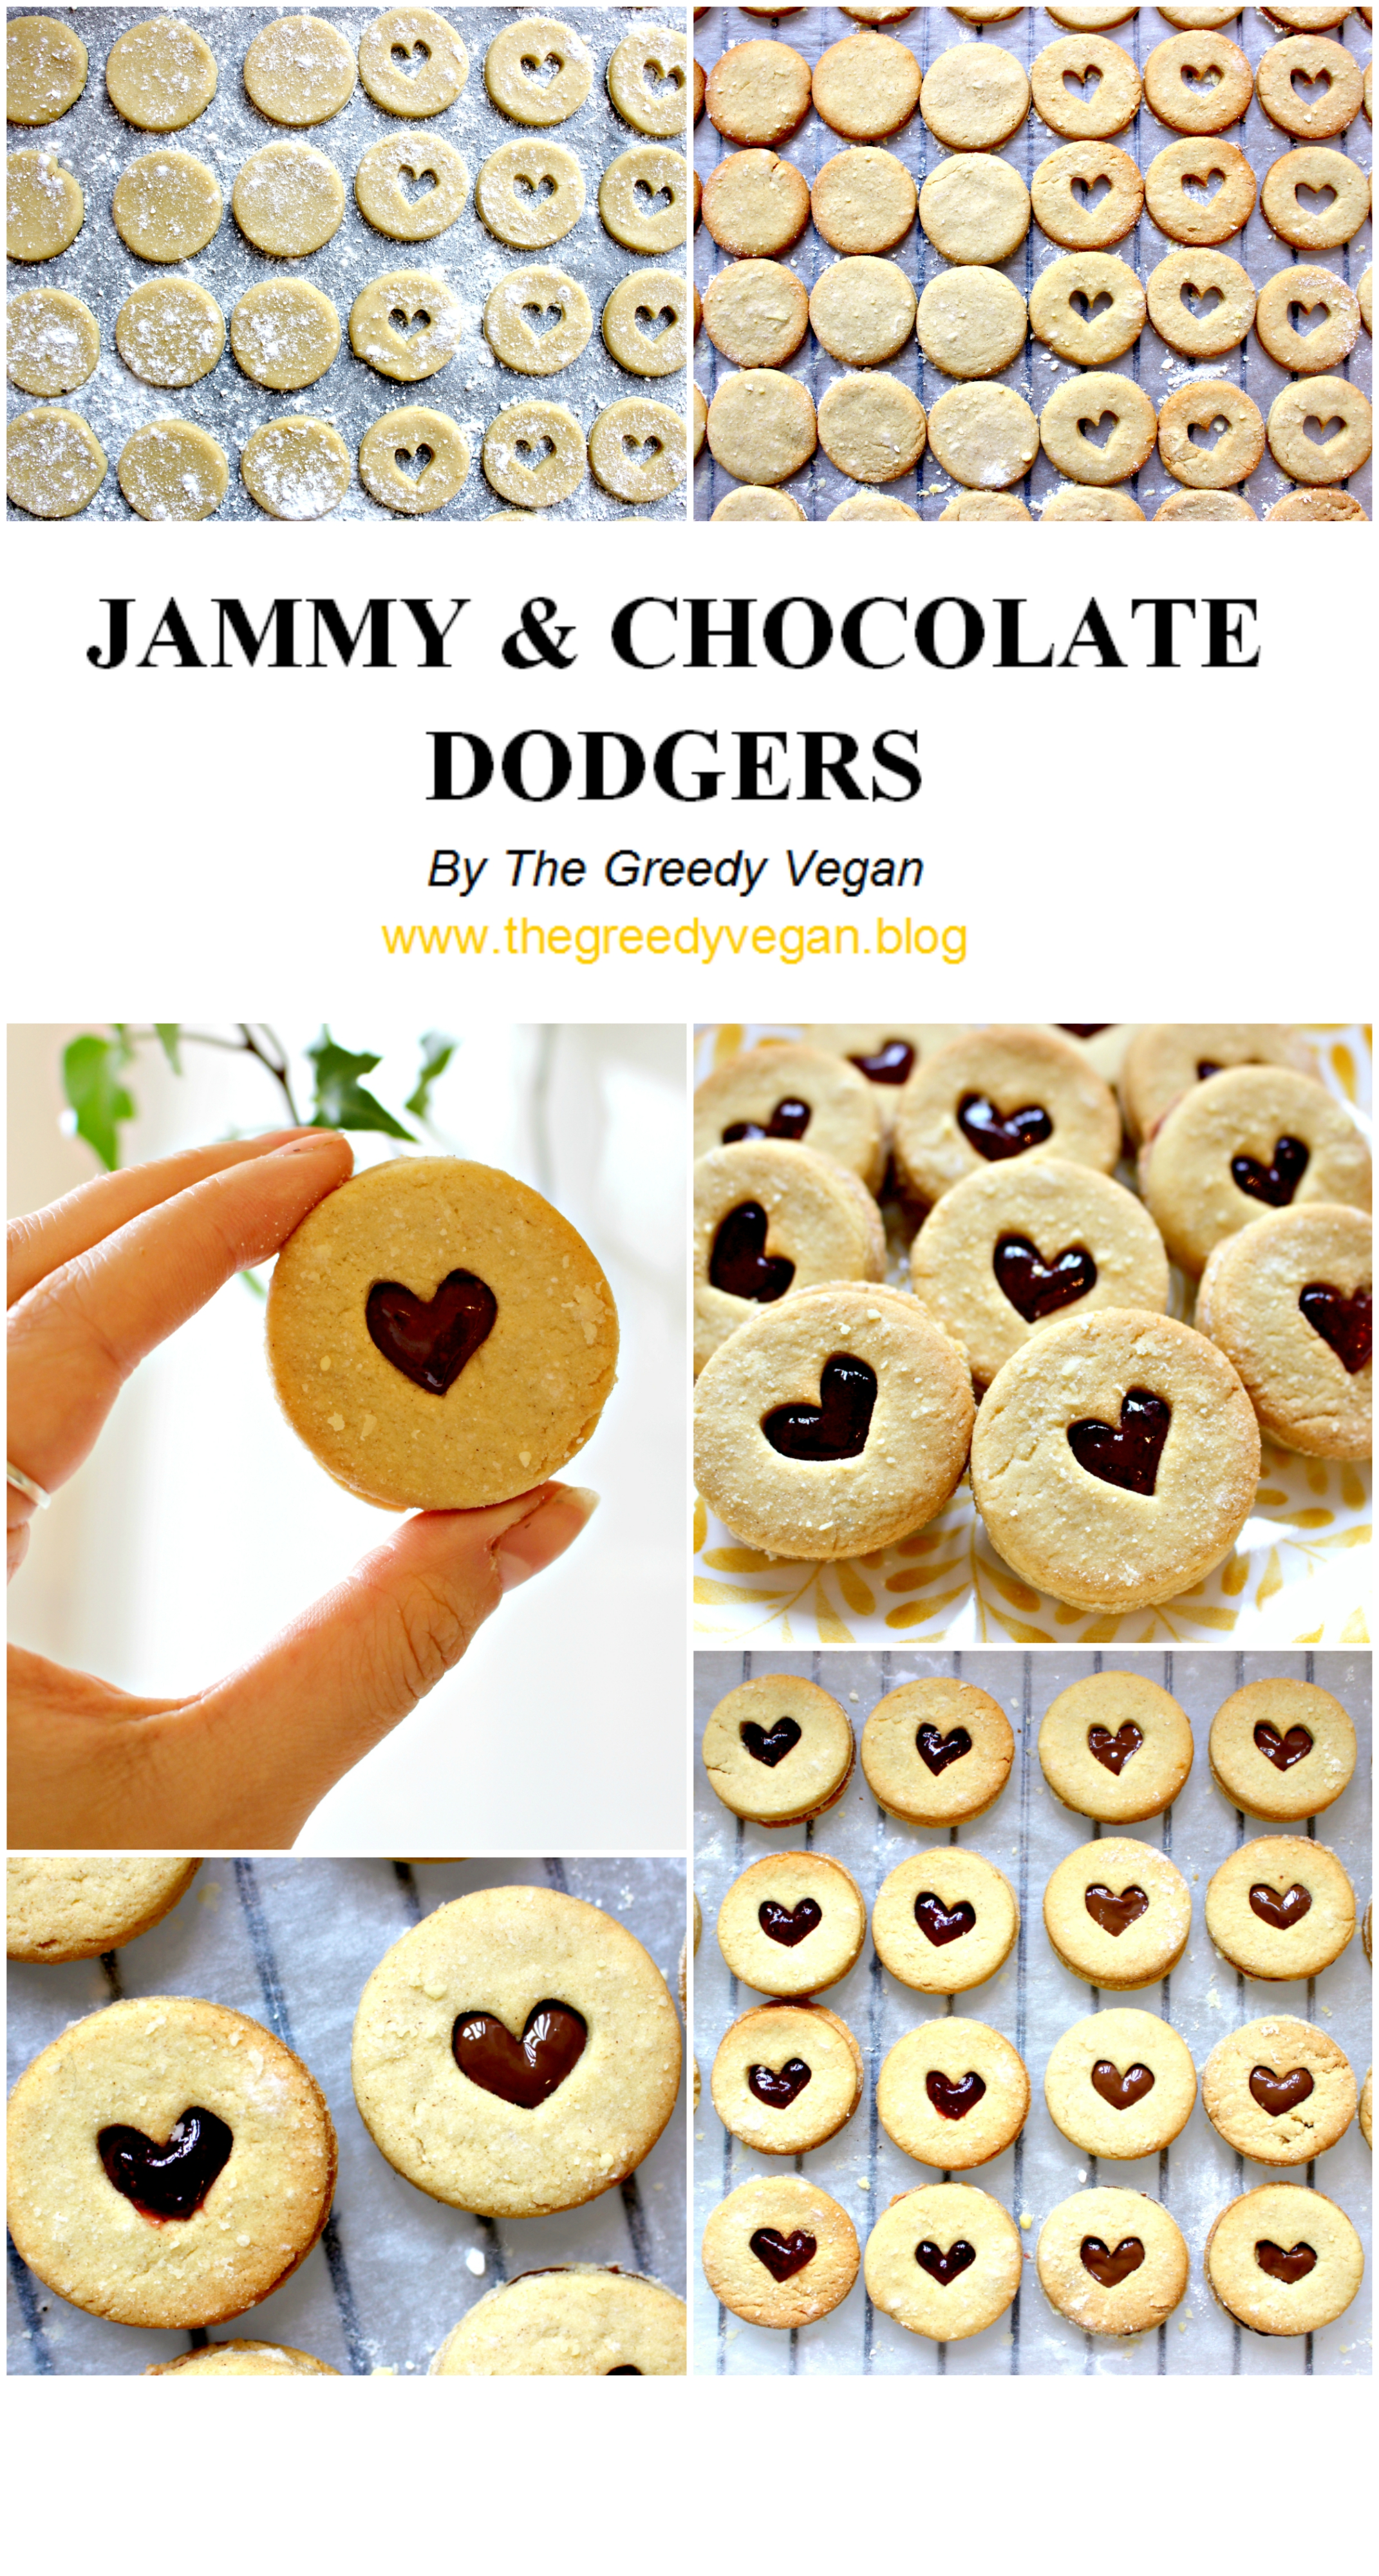 Jammy and Chocolate Dodgers.jpg